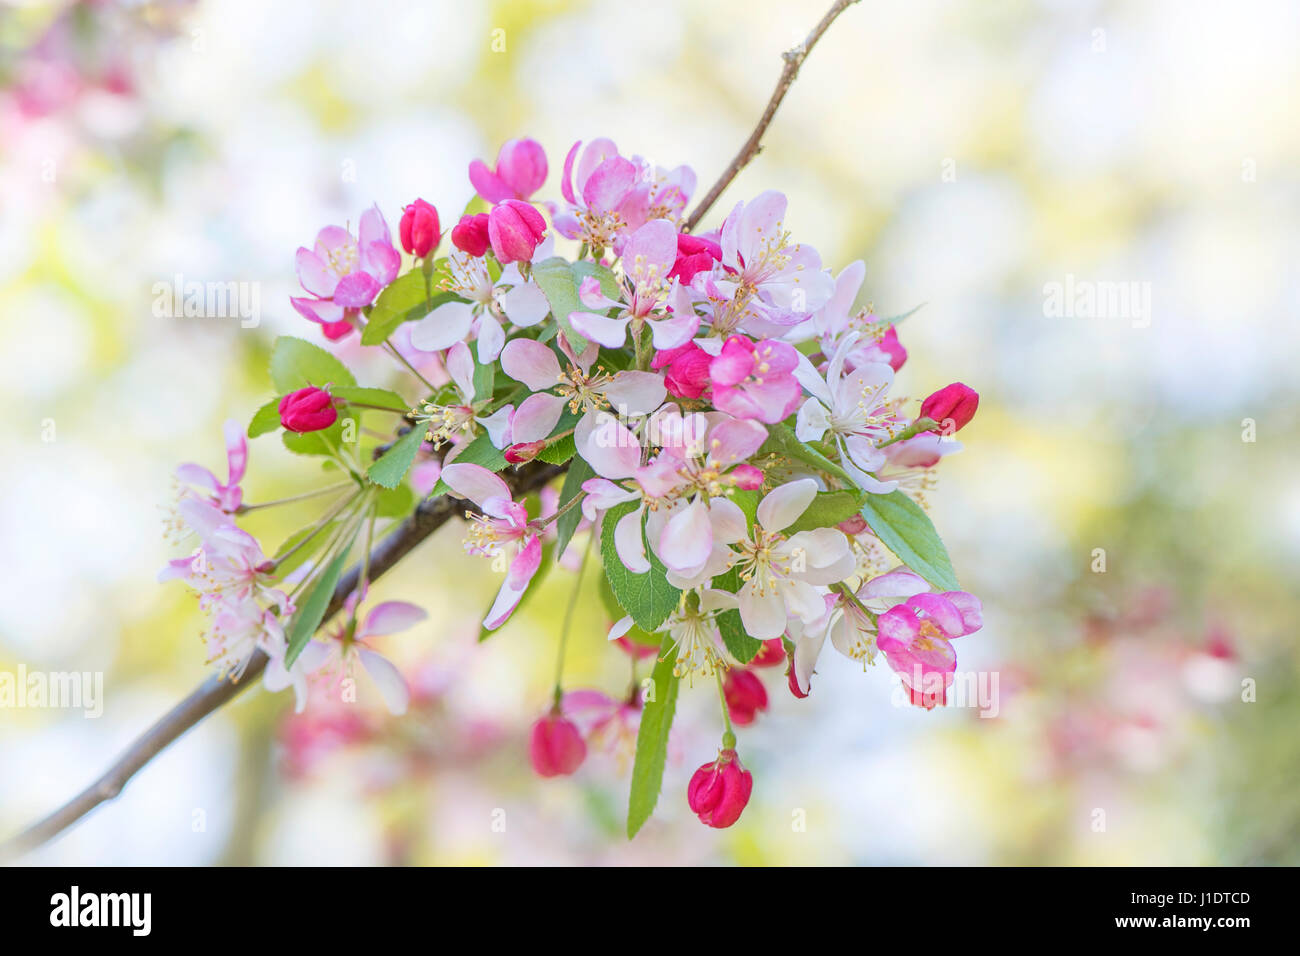 Close Up Image Of The Pretty Spring Blossom Pink And White Flowers